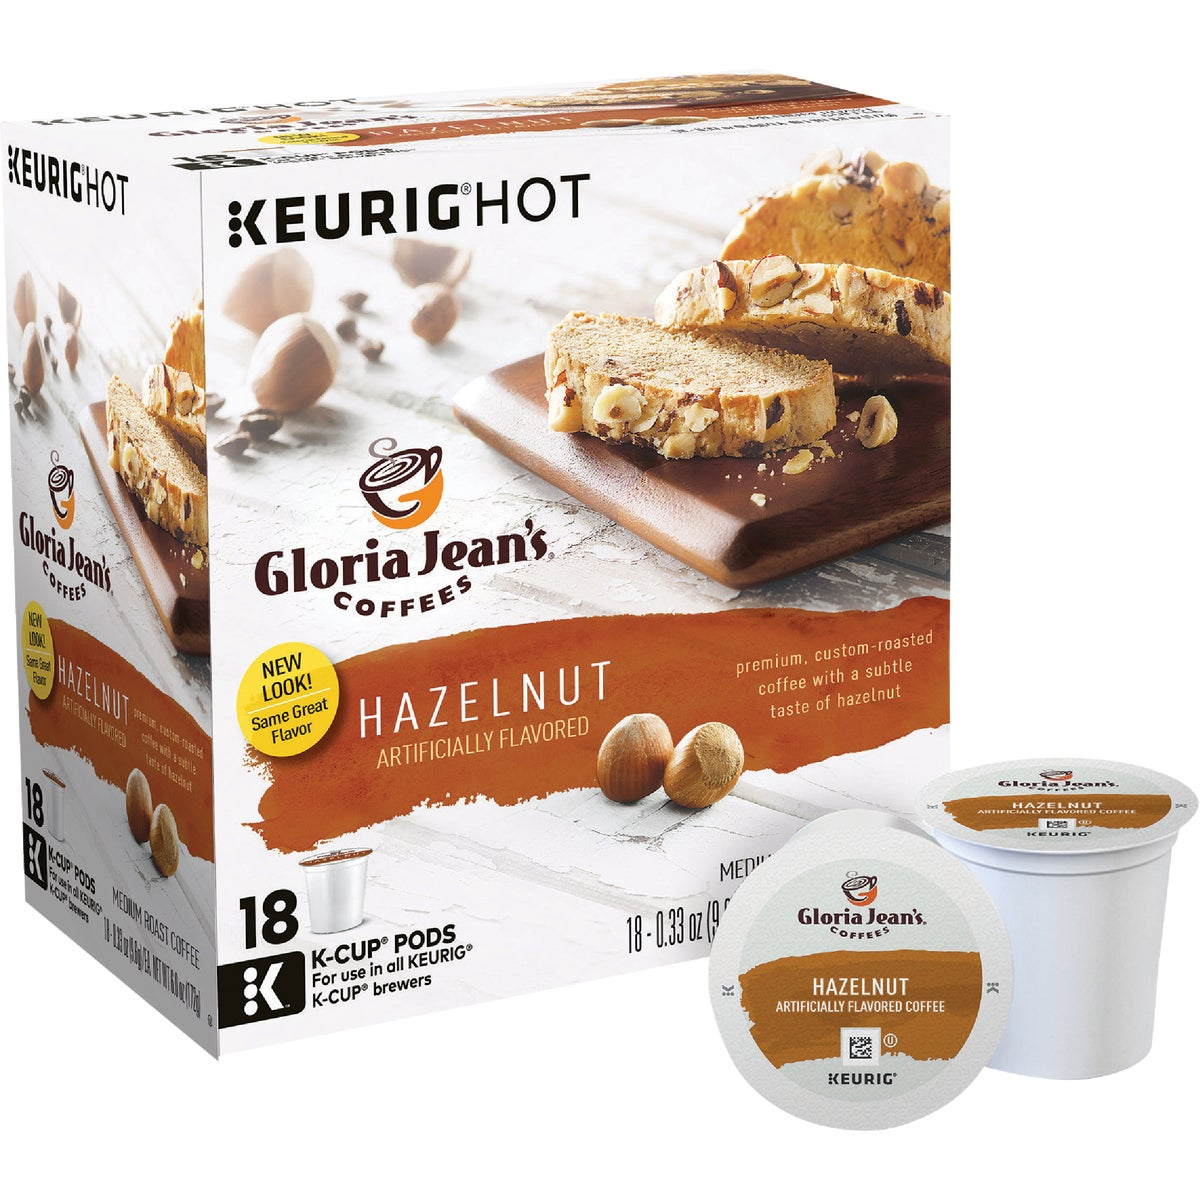 K-CUP HAZELNUT COFFEE